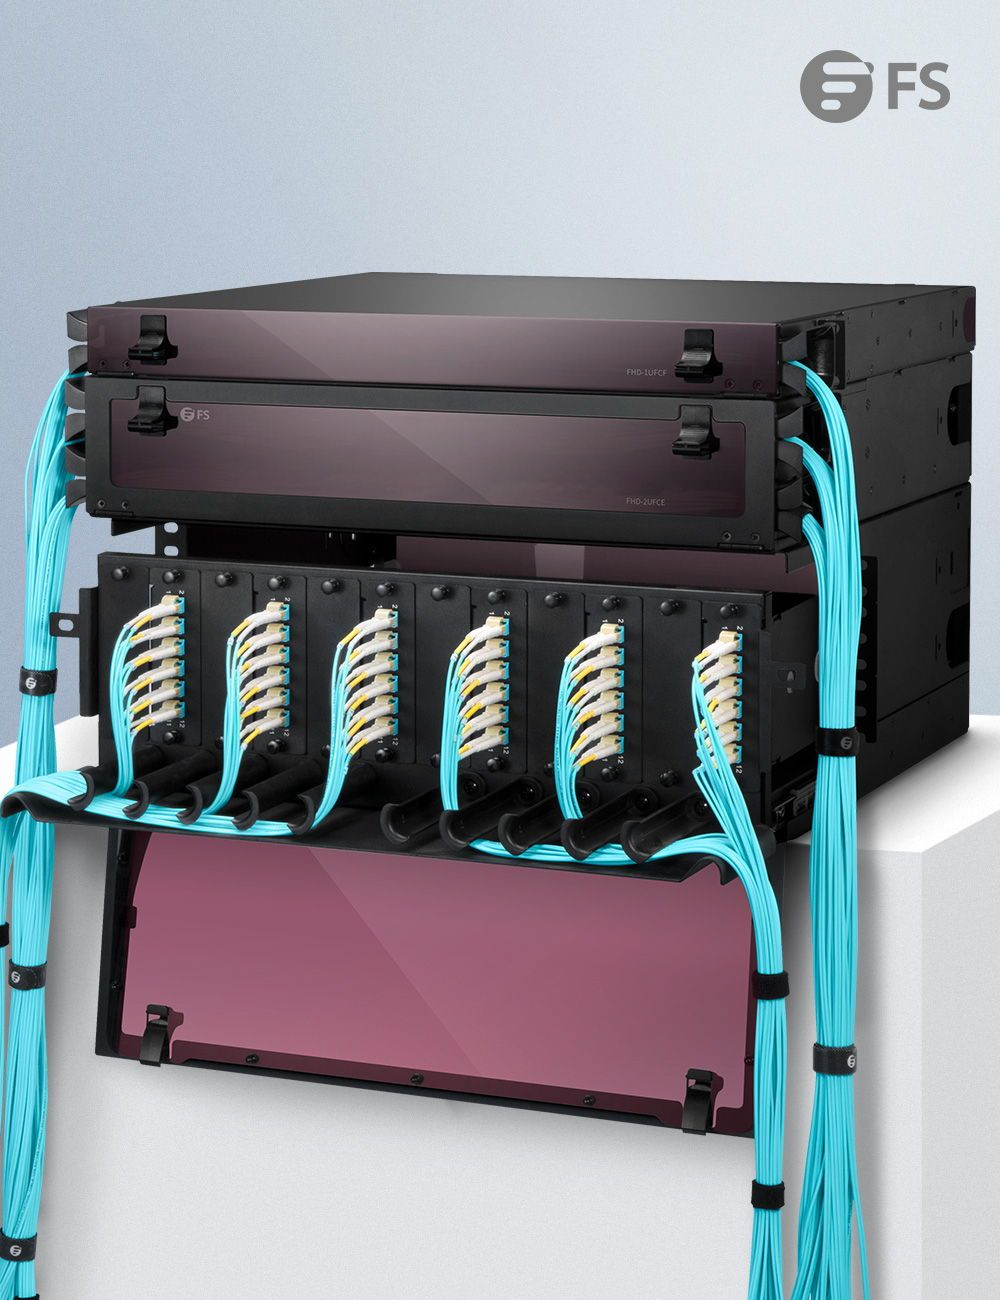 Pin By Sorin Oprea On Cable Management In 2020